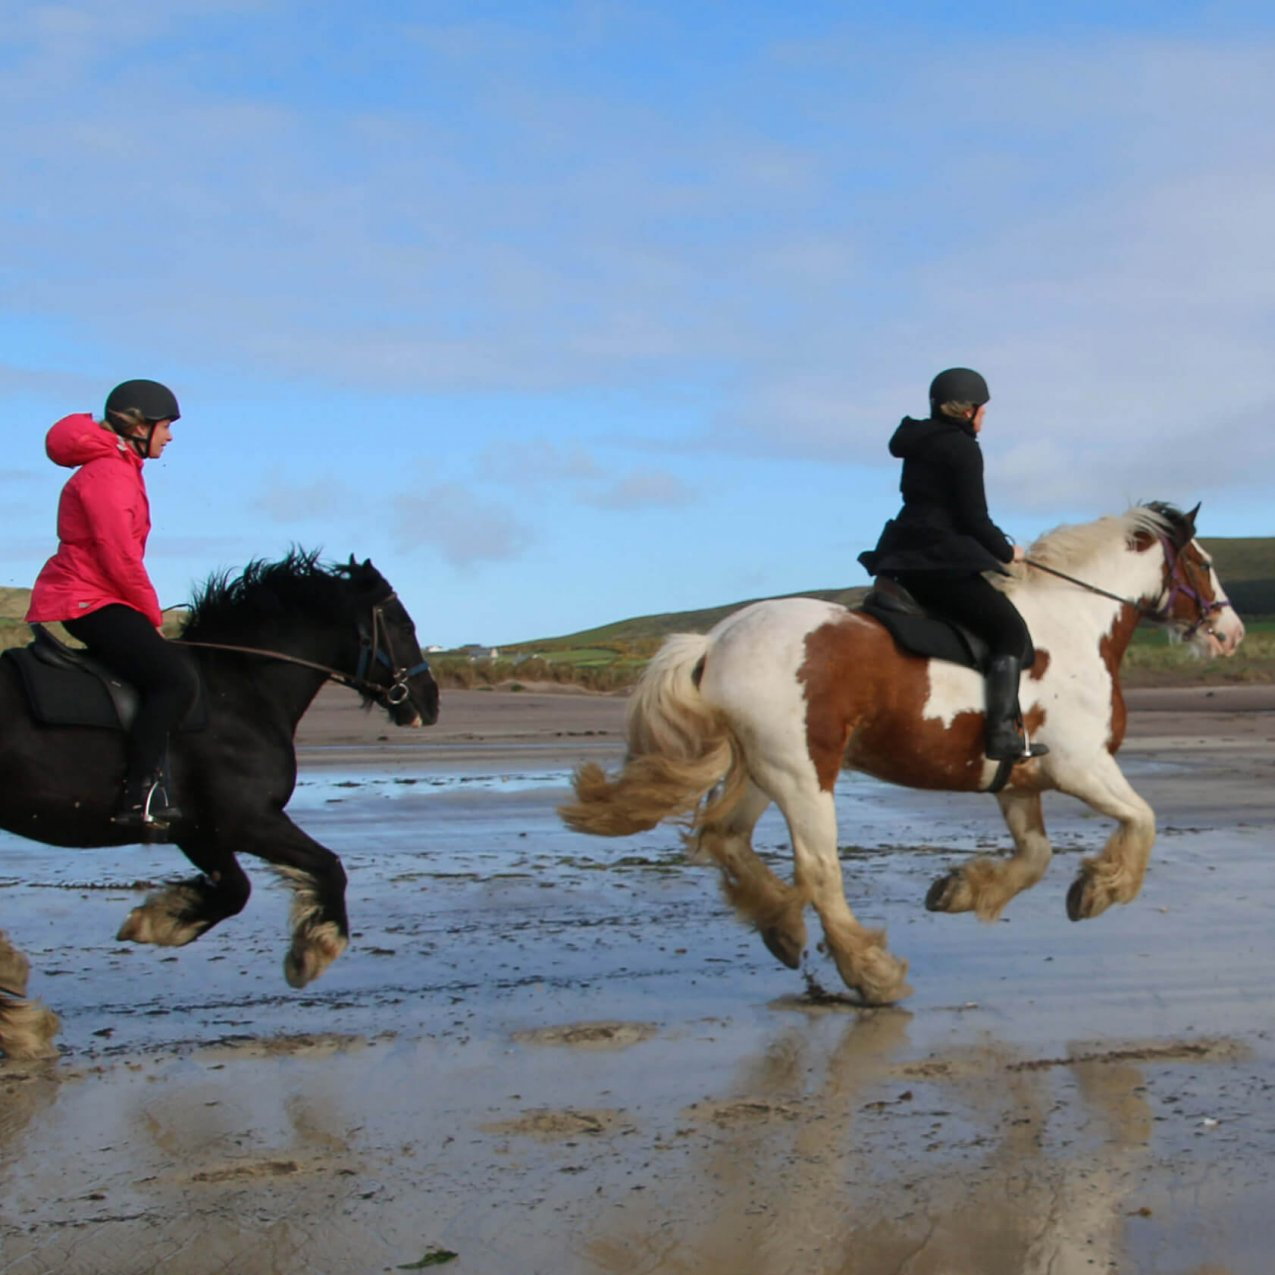 Horse Riding on an Irish Beach